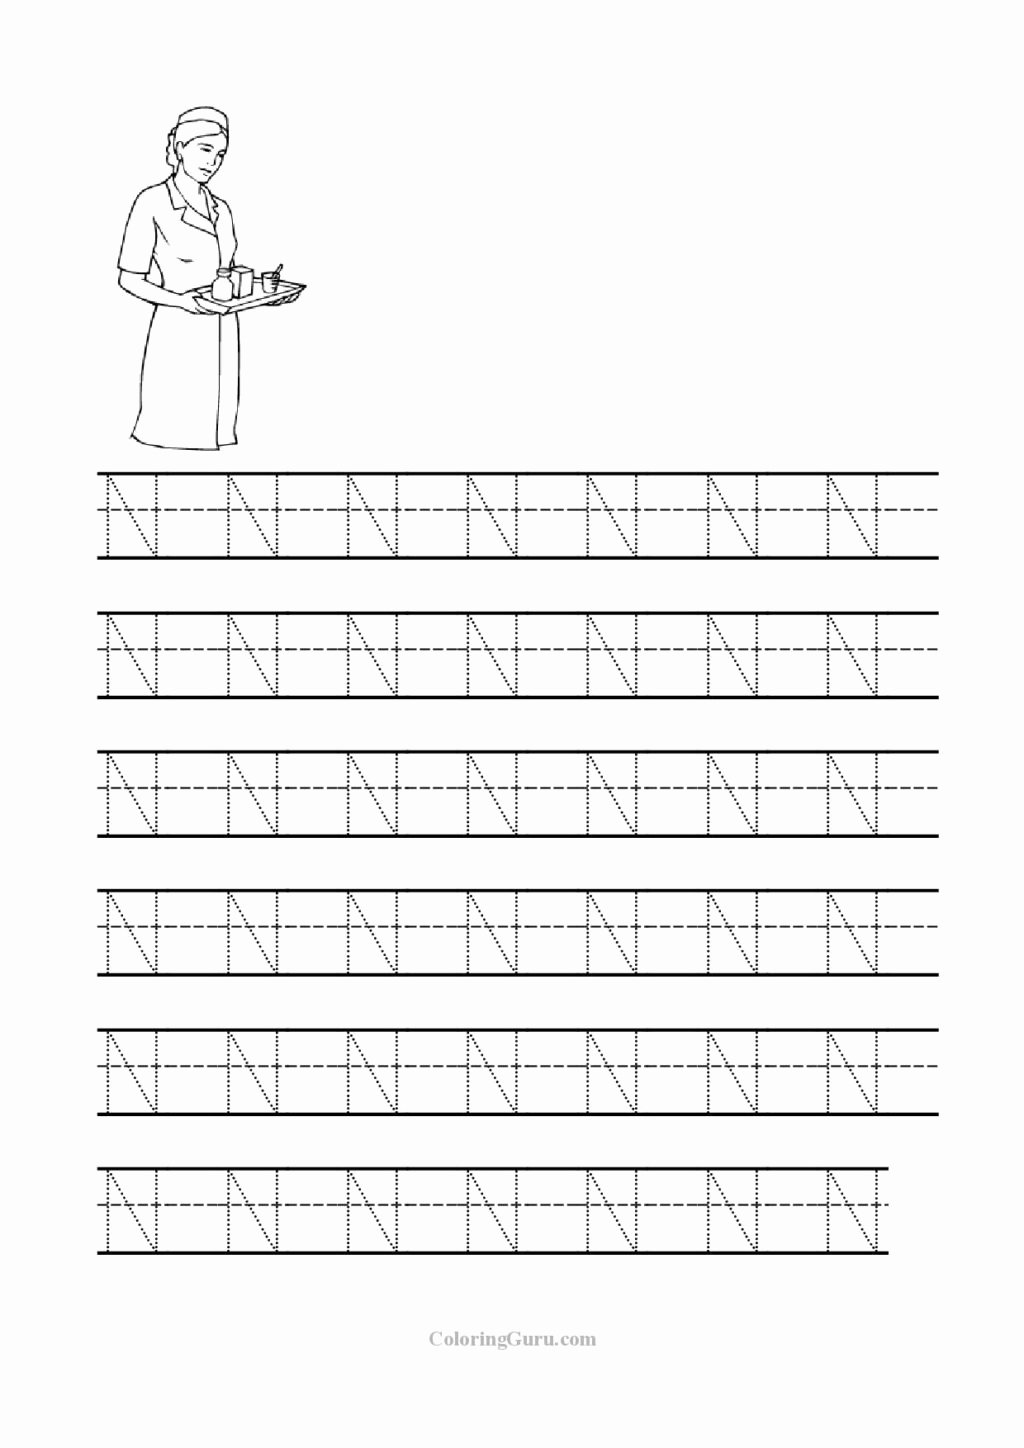 Letter N Worksheets for Preschoolers Unique Worksheet Worksheet Lettering Printables Free Printable